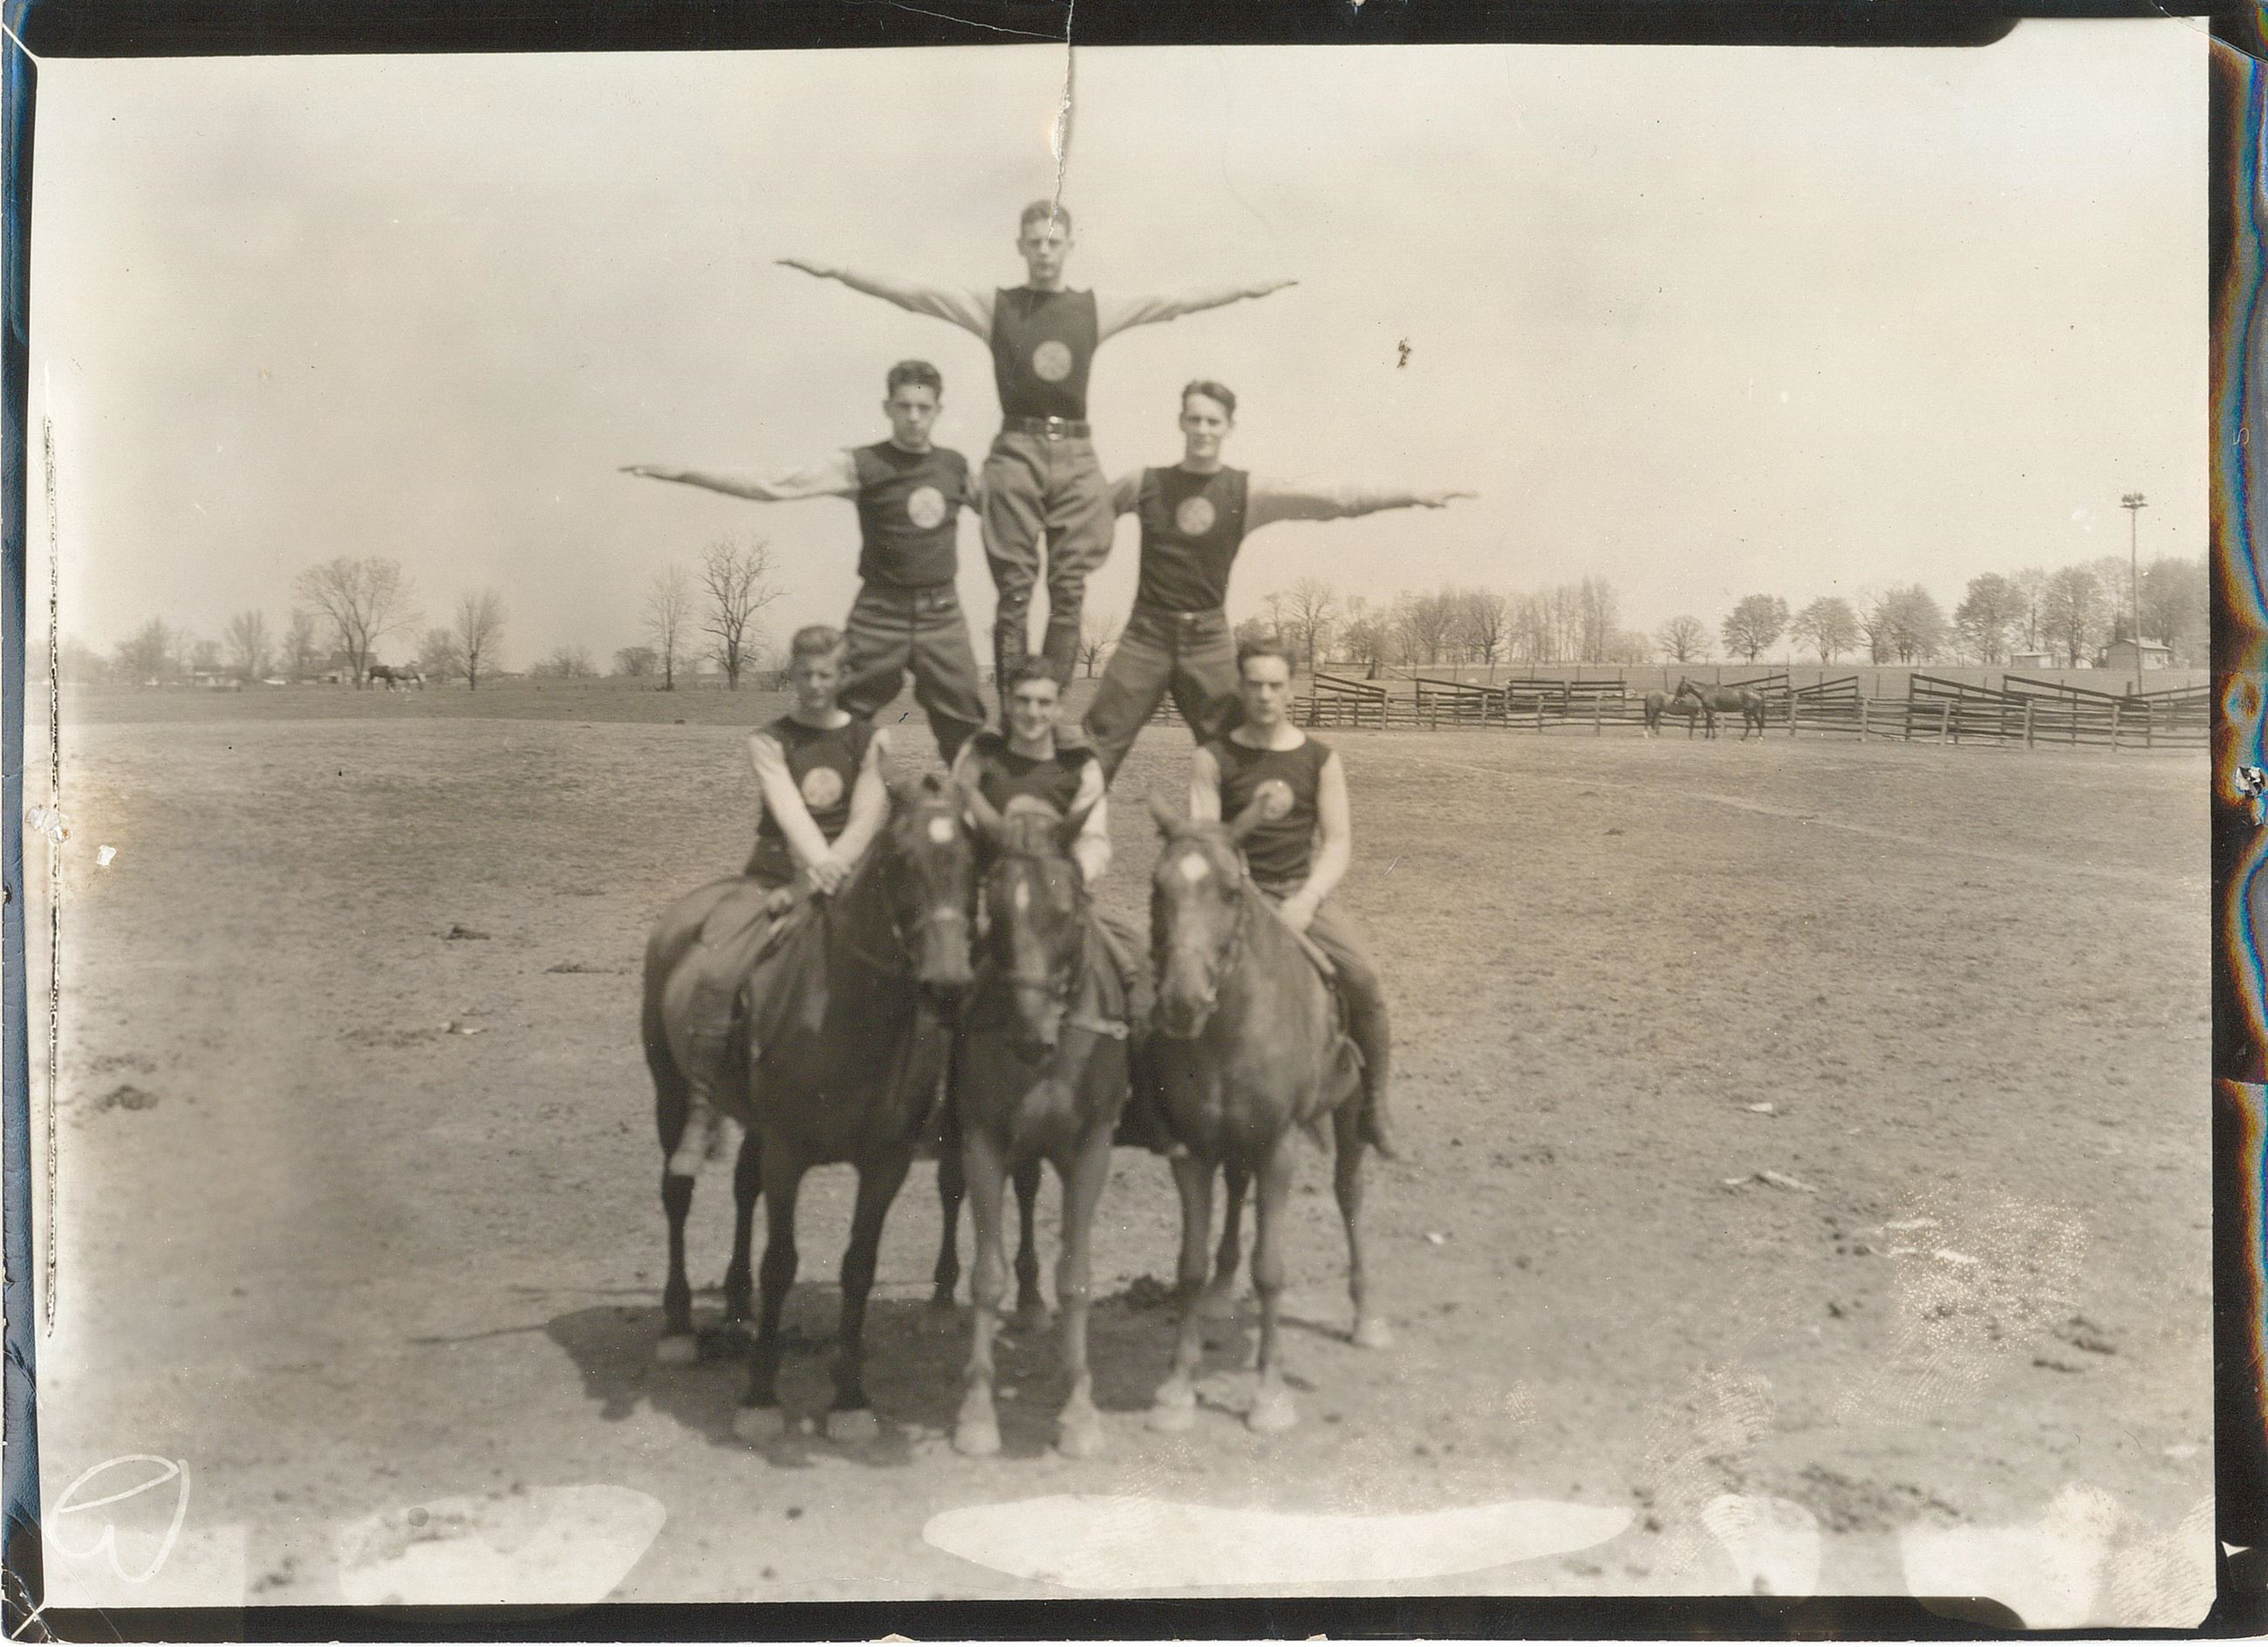 Photo of Troop I men on horseback